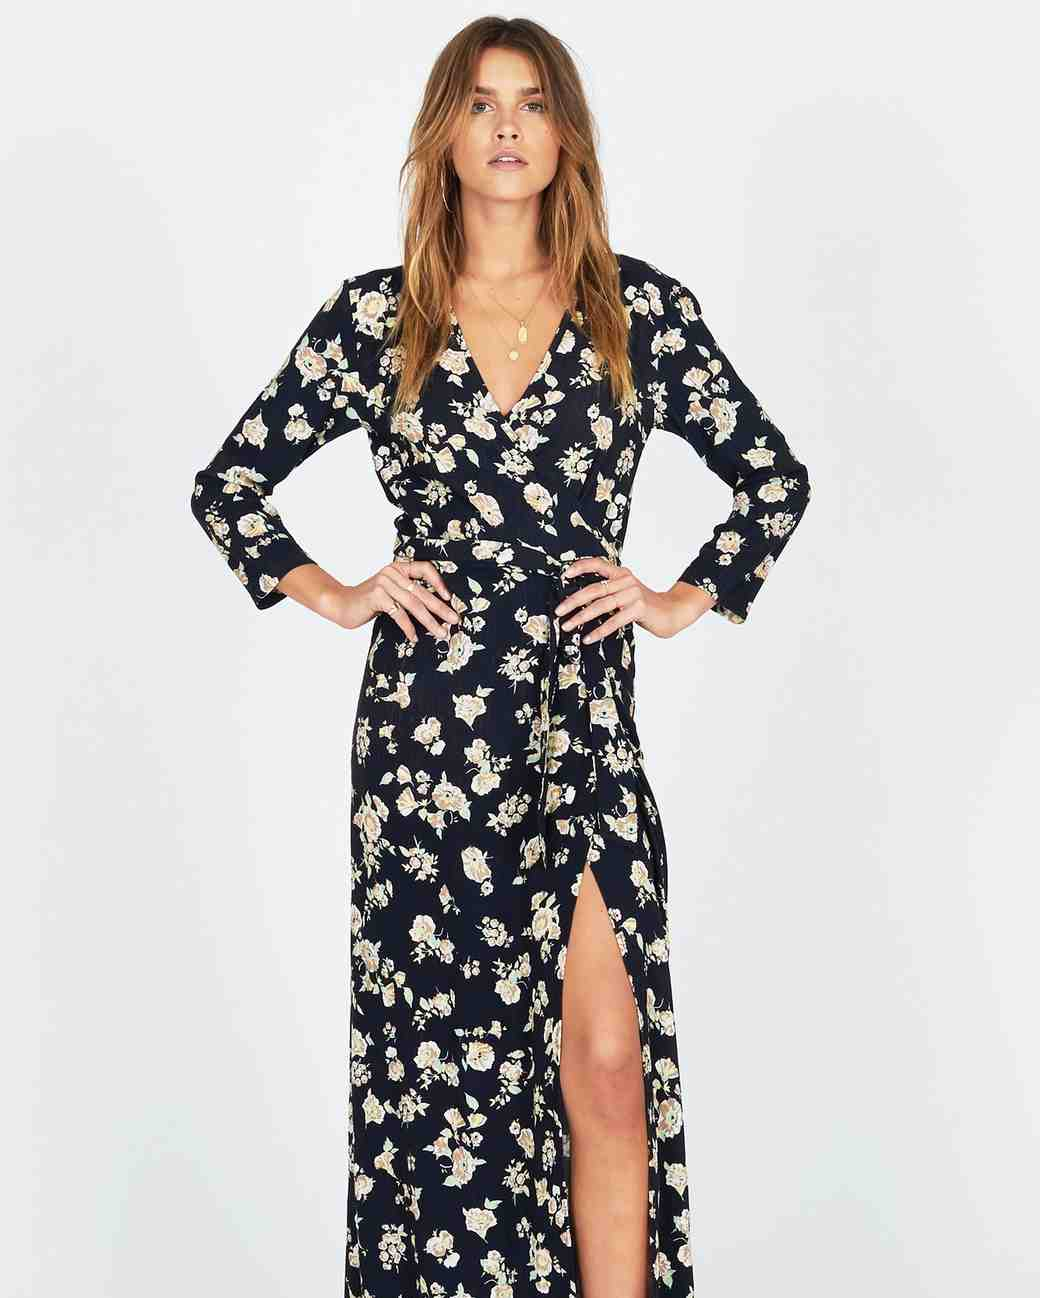 Wedding Guest Dress: 25 Beautiful Dresses To Wear As A Wedding Guest This Fall